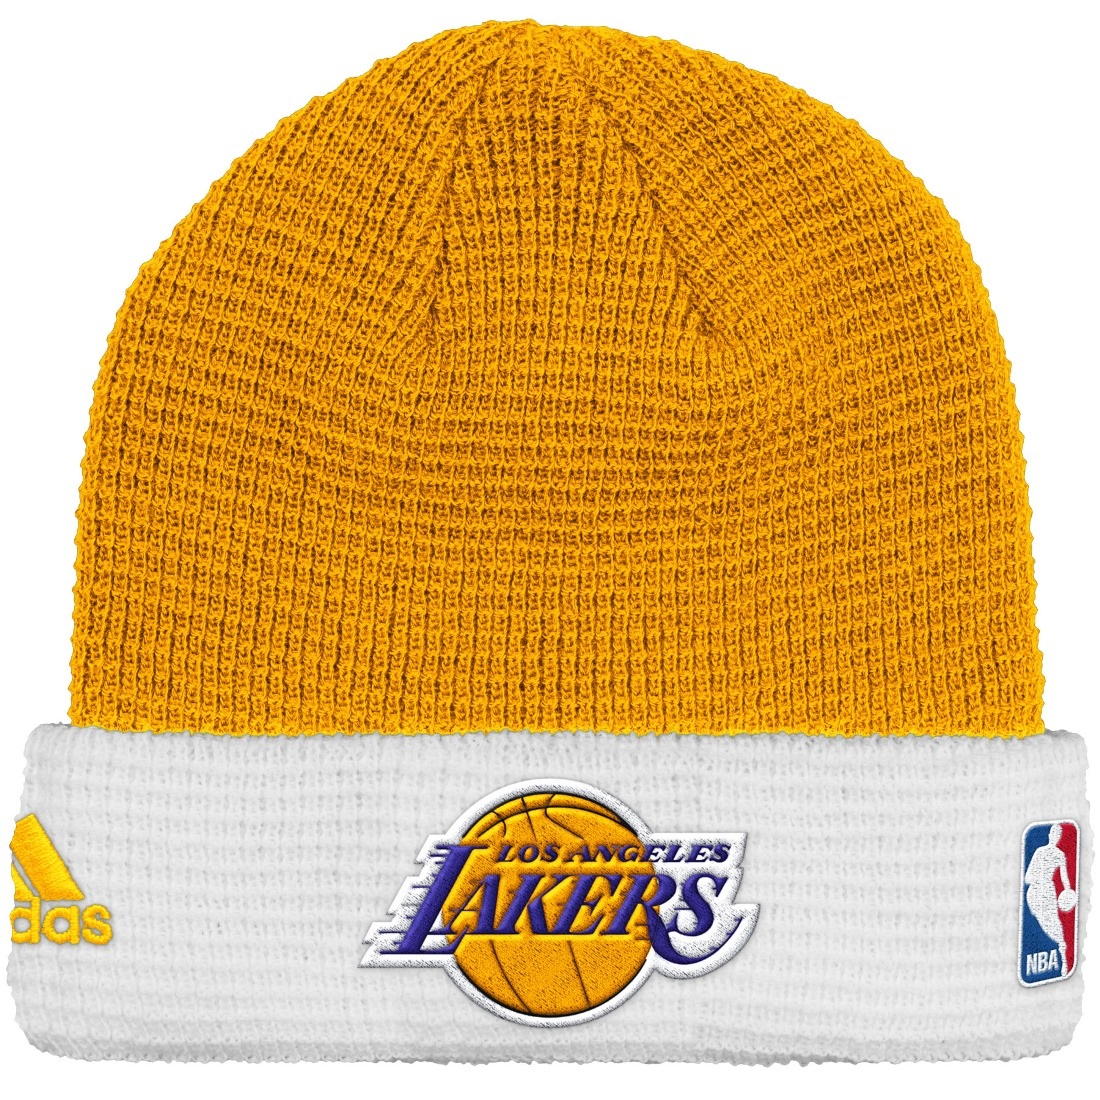 Los Angeles Lakers Adidas NBA 2015 Authentic Team Cuffed Knit Hat by Adidas